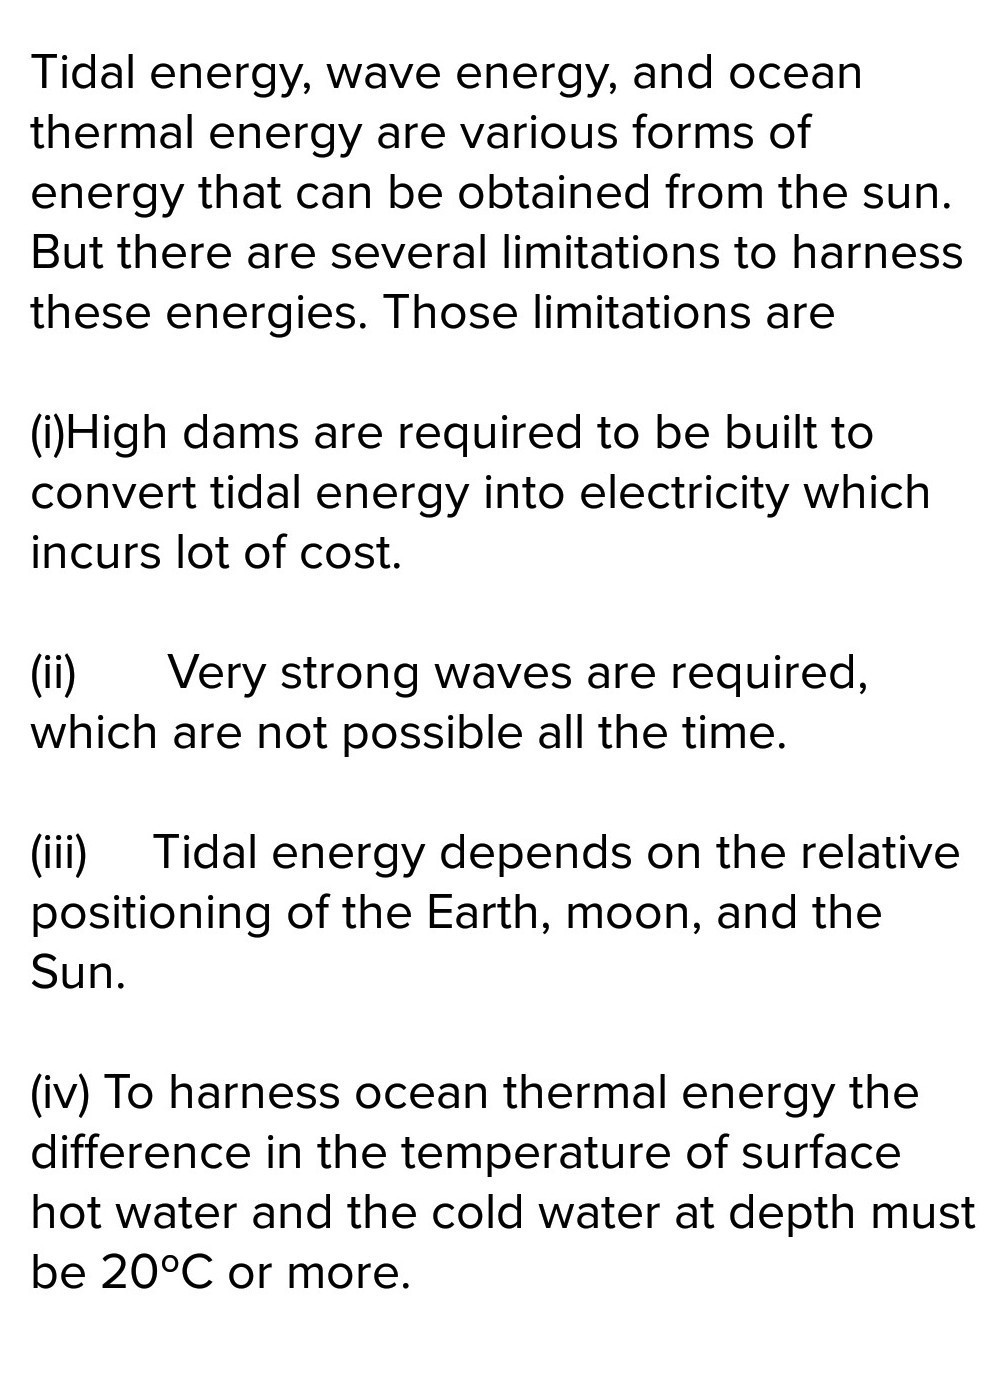 Limitations Of Ocean Thermal Energy - Energy Etfs